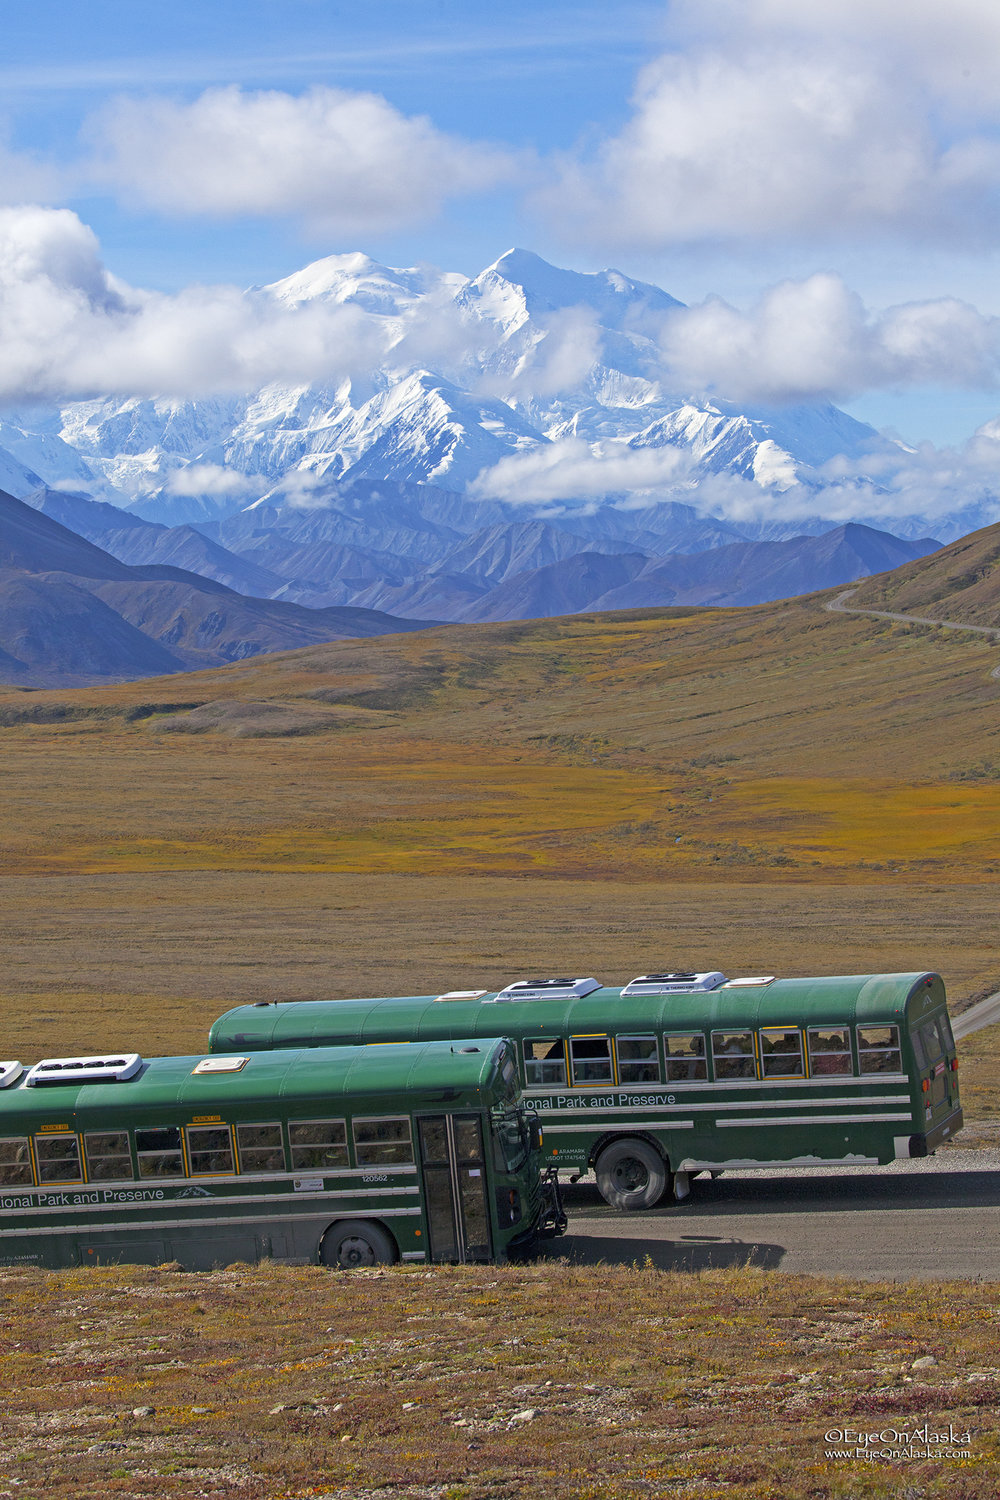 First-time visitors on the shuttle buses getting to join the 30% club.  That's about how many people get to see Denali while they're visiting.